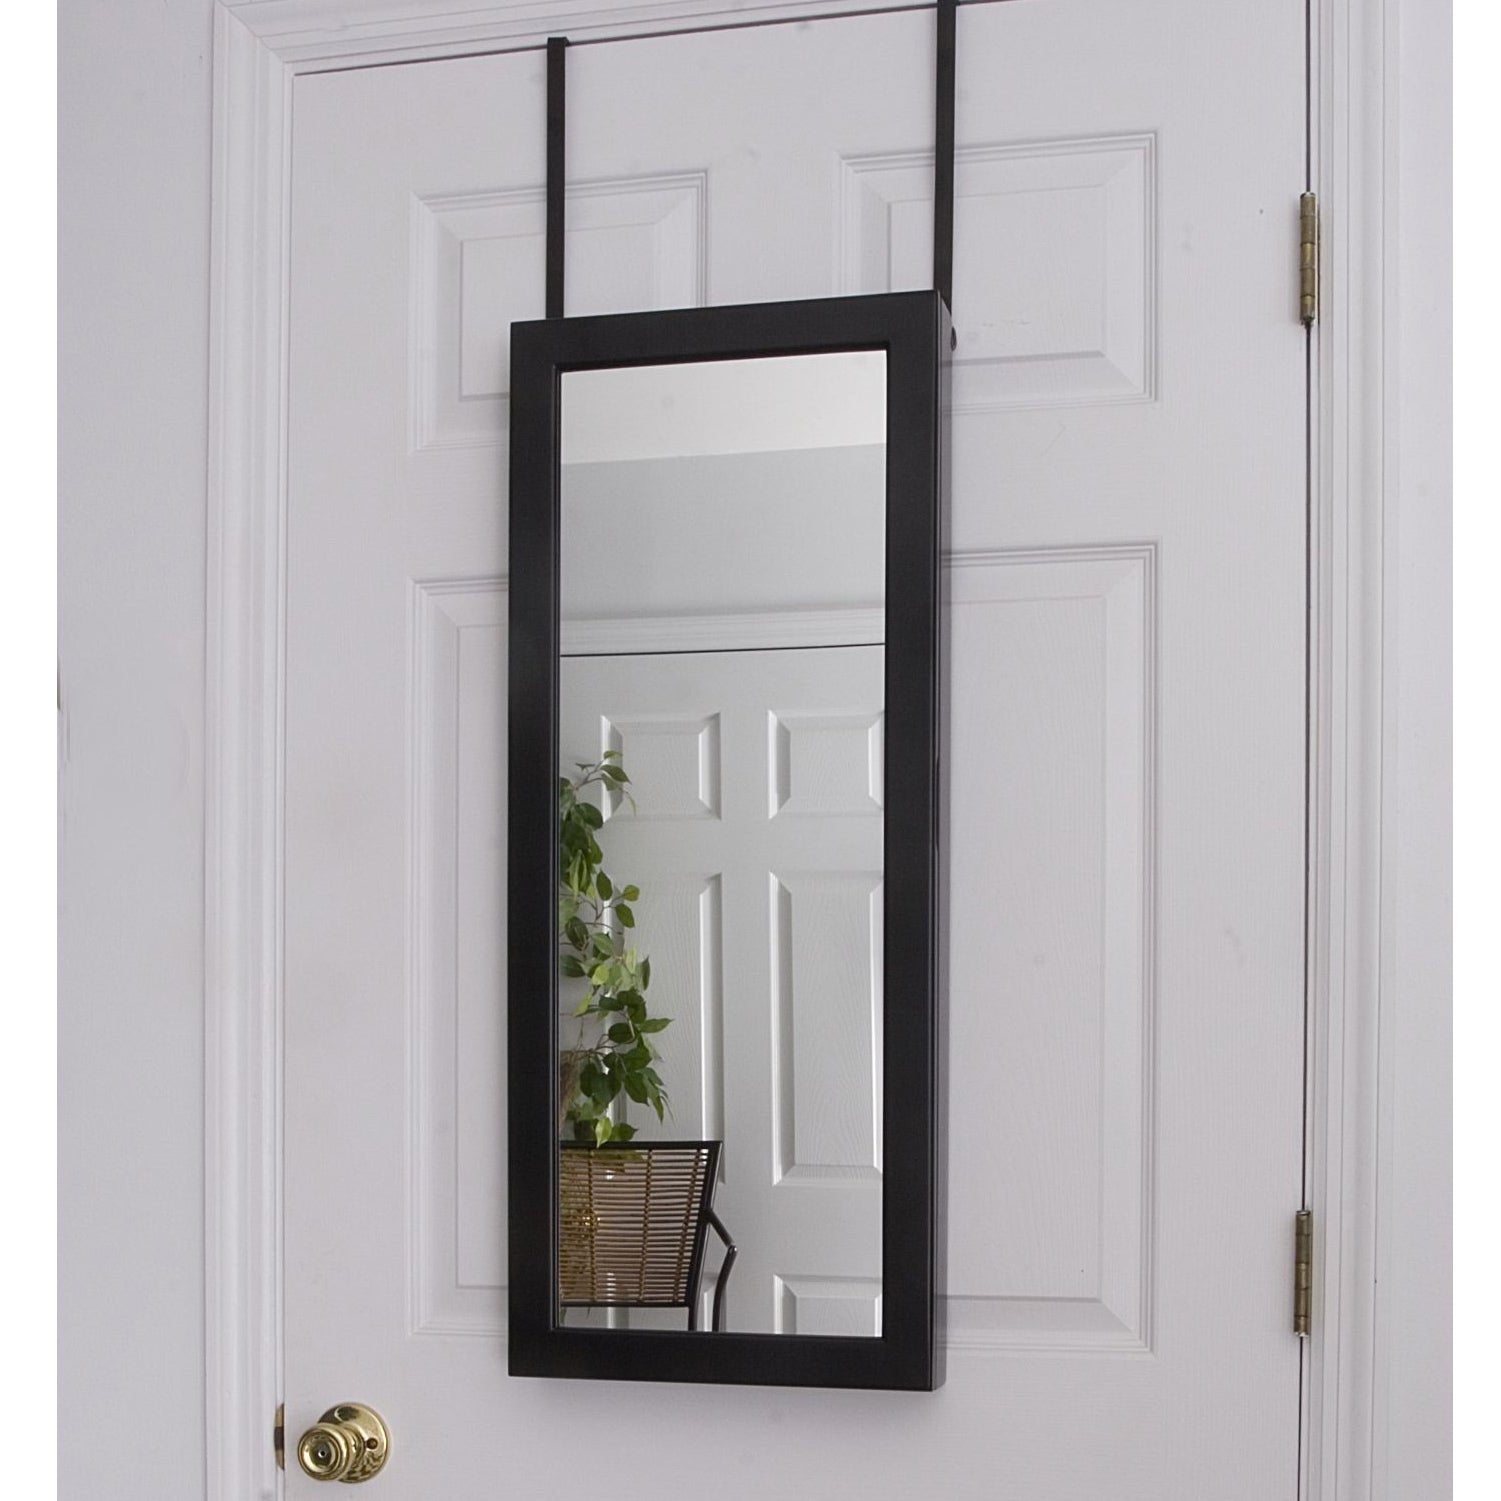 Space Saving Over-the-Door/ Wall Hanging Mirrored Jewelry ...